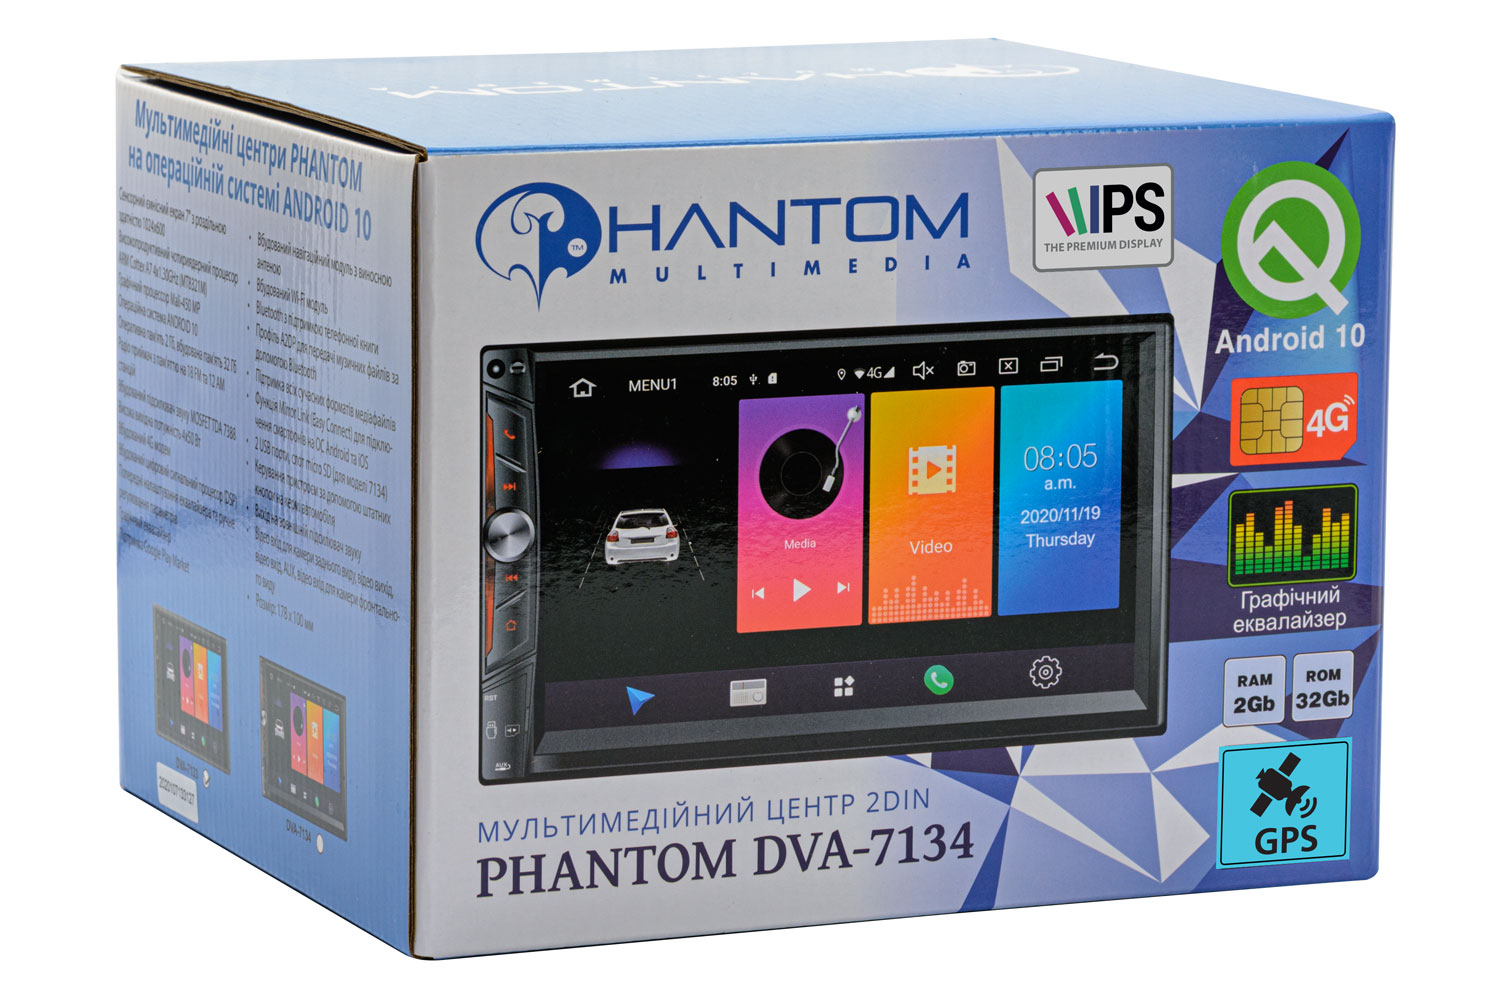 multimedіyniy_tsentr_phantom_dva-7134